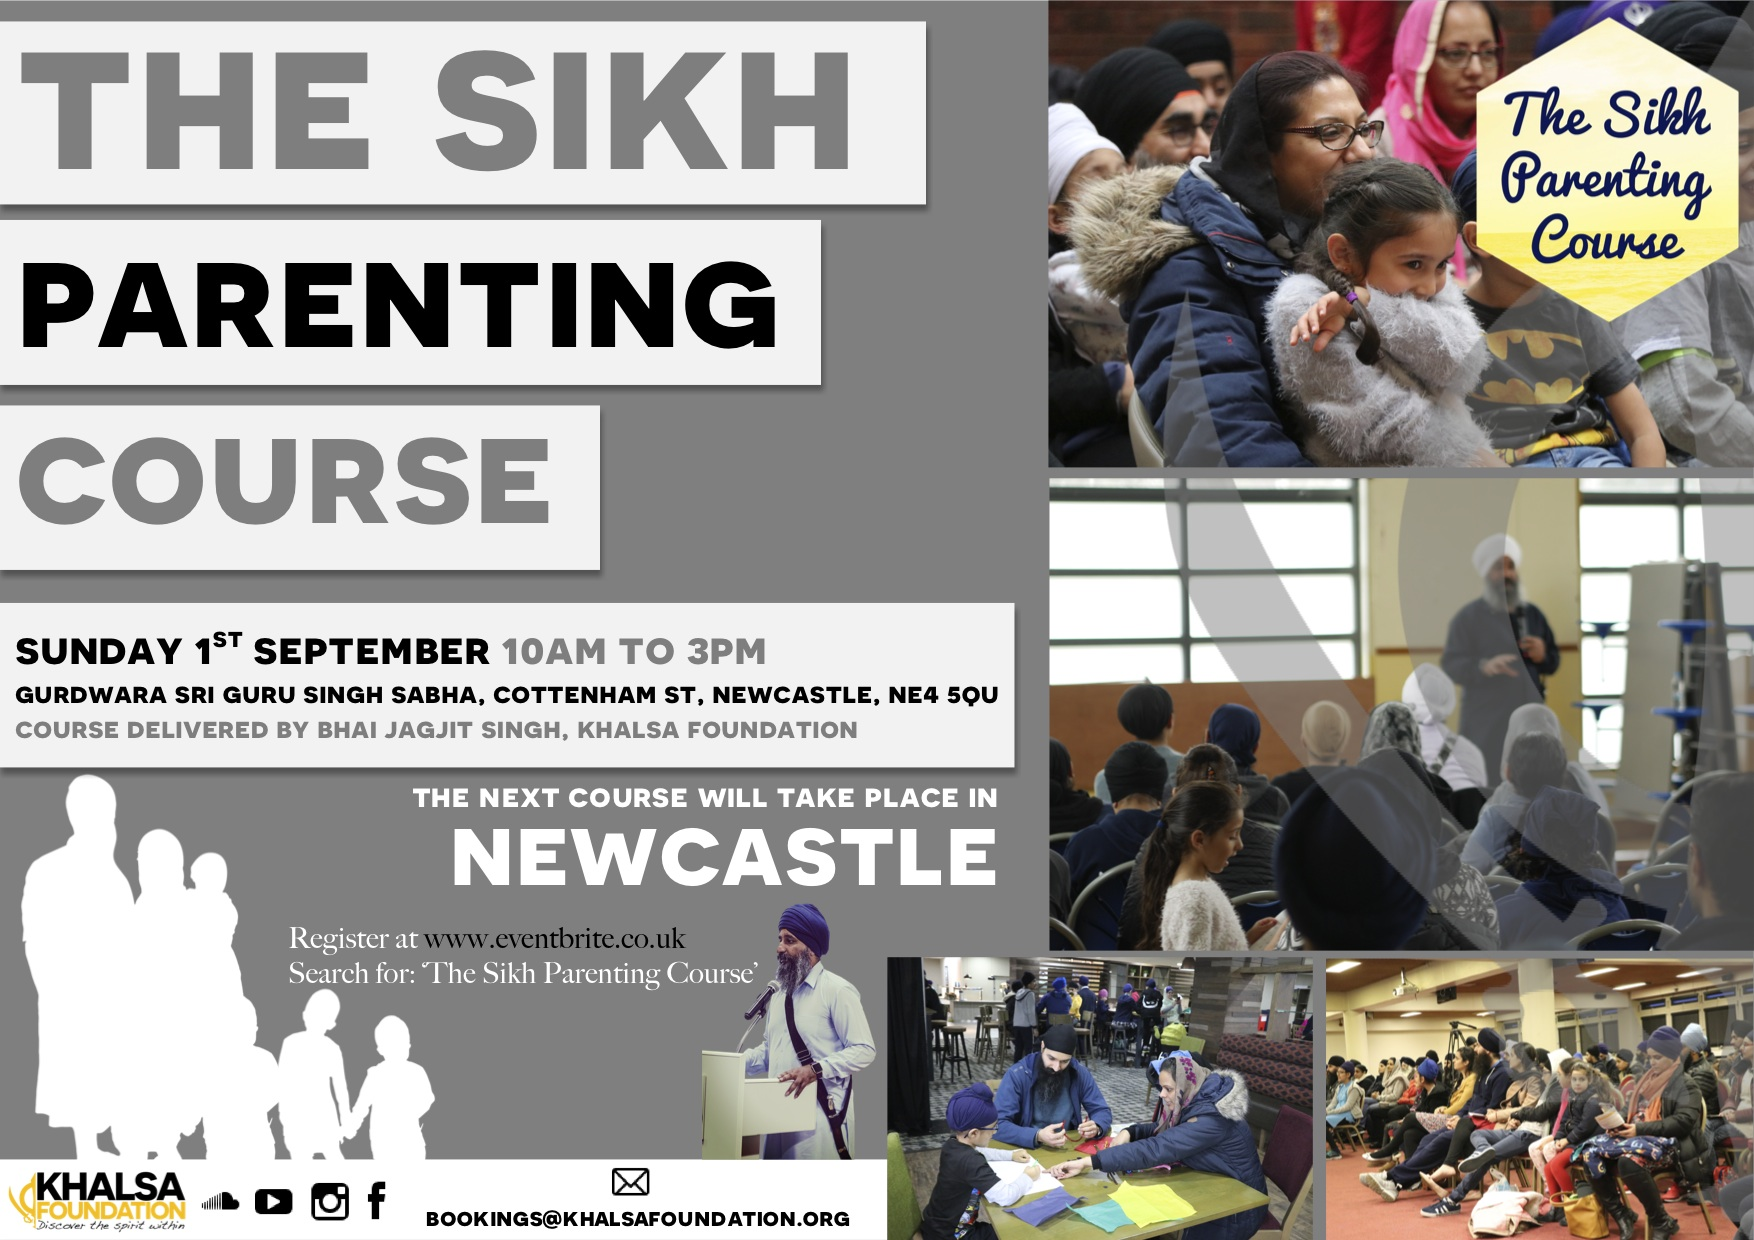 Poster for Sikh Family Course in Newcastle on September 1st 2019